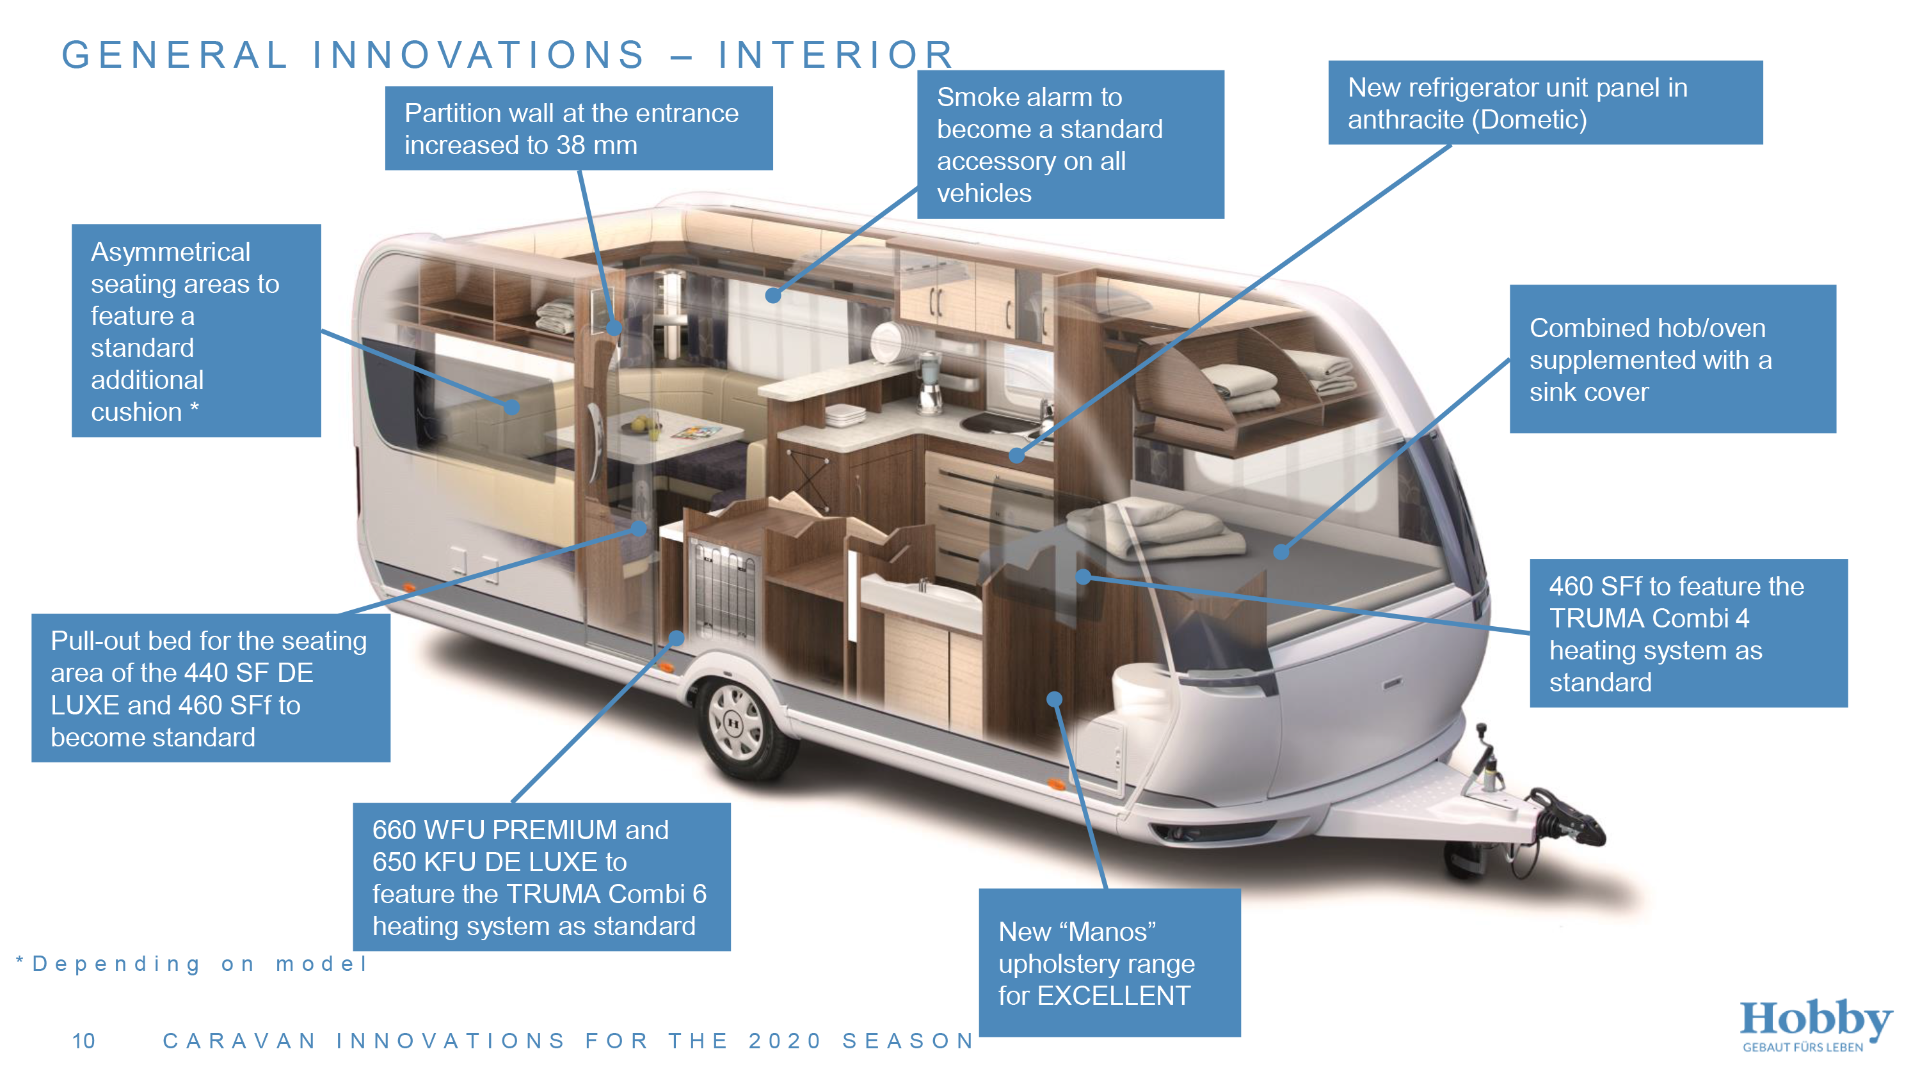 General innovations interior